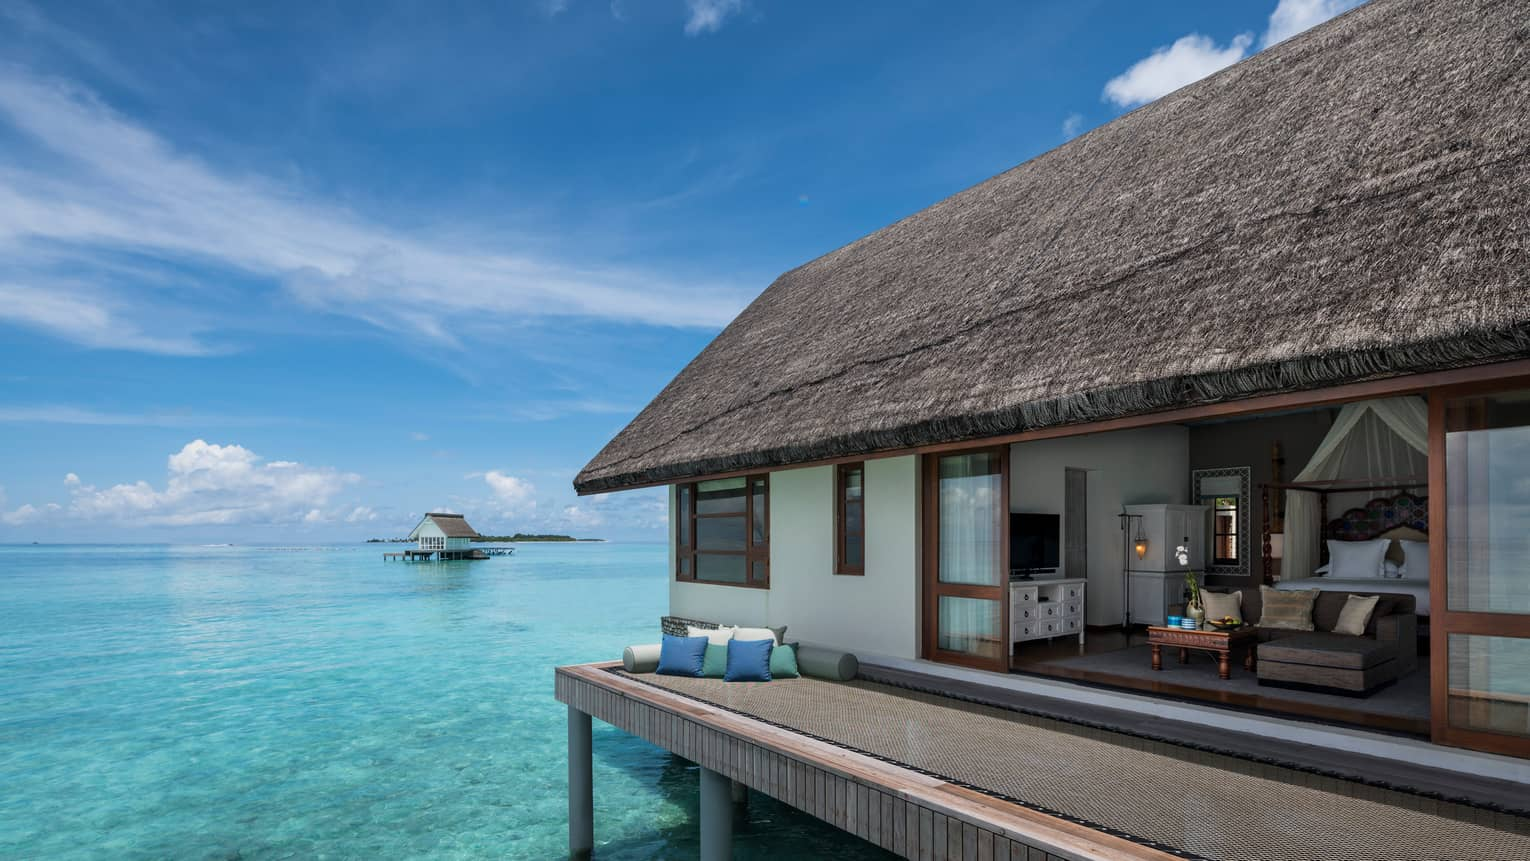 Overwater bungalow with thatched roof, set atop clear turquoise water